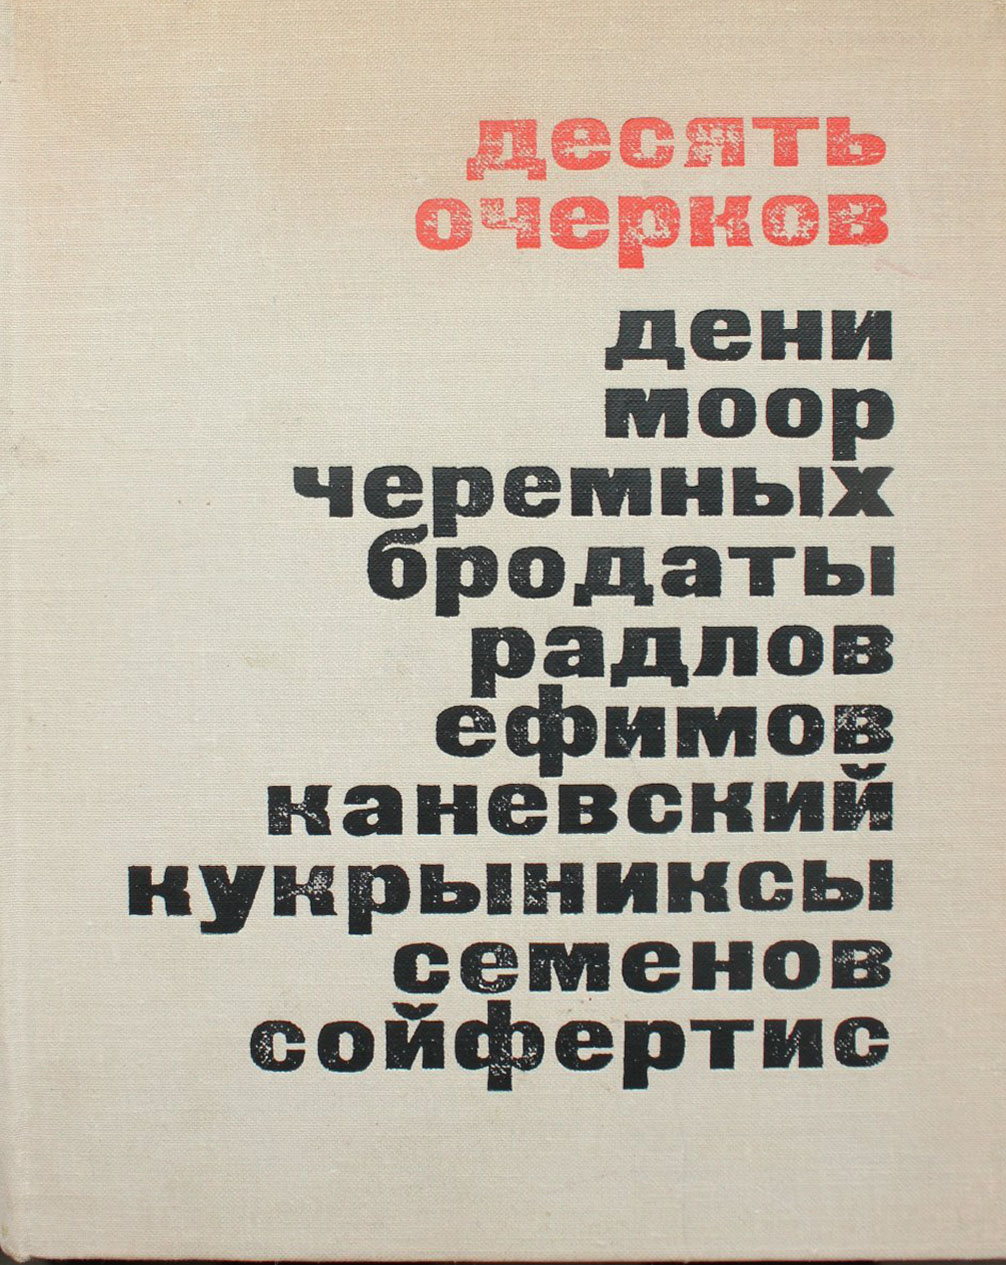 soviet satire artists desyat ocherkov o khudozhnikakh satirikakh soviet satire artists desyat ocherkov o khudozhnikakh satirikakh i e ten essays on satirical artists m l ioffe